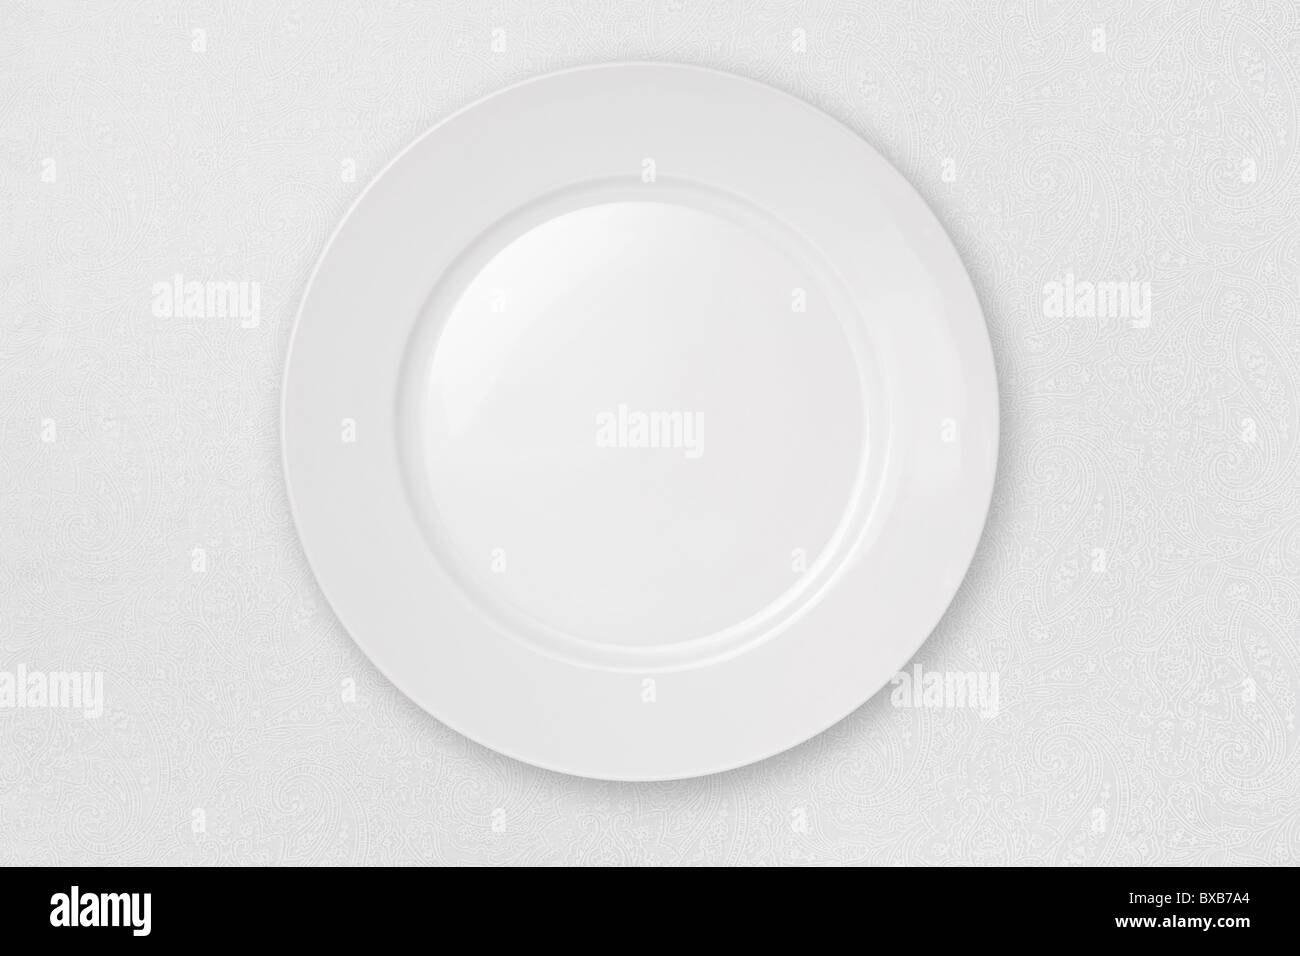 Empty Plate isolated on a White Tablecloth. - Stock Image